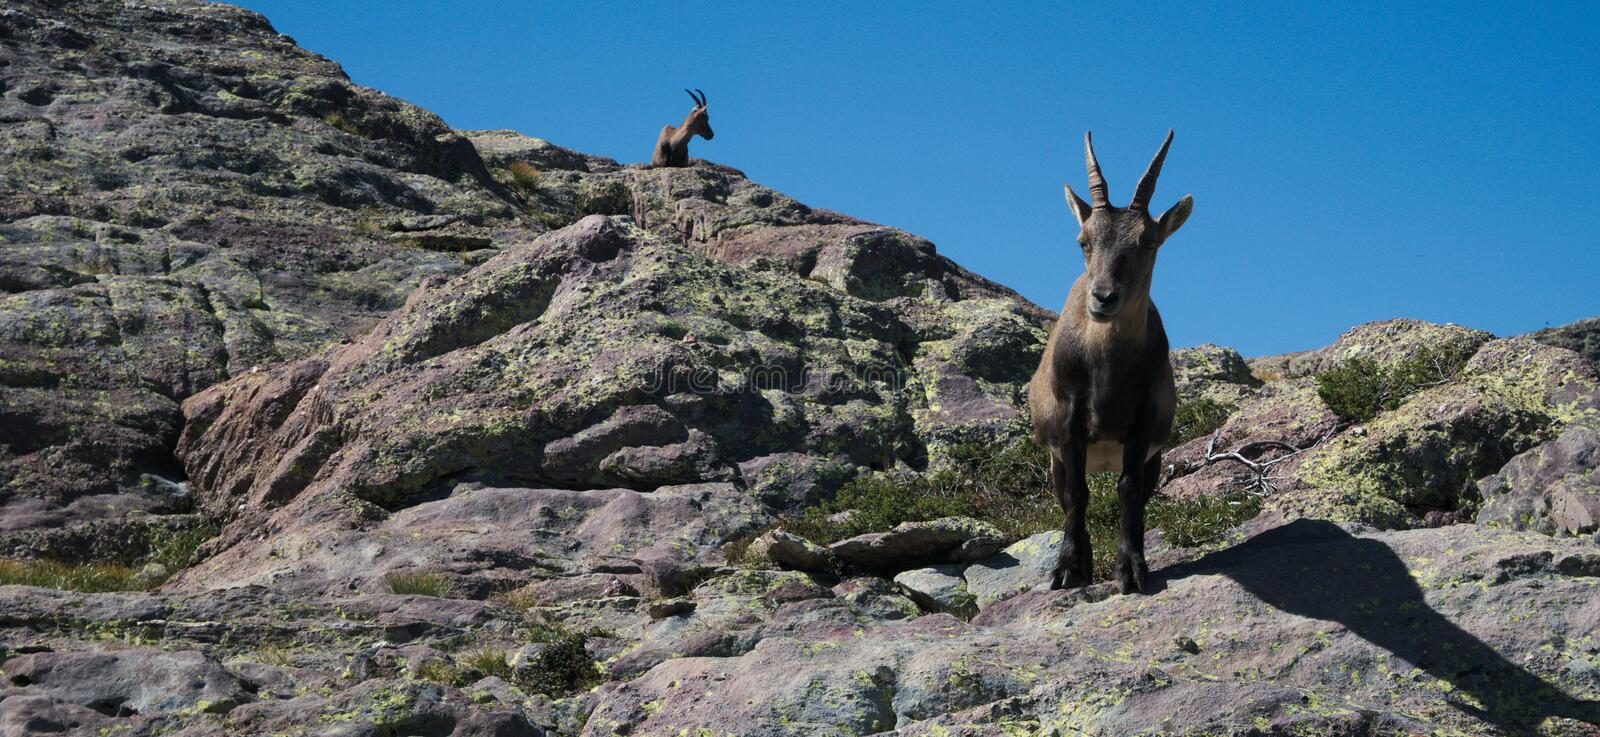 Alpine ibex looking at the camera on top of a peak royalty free stock photography